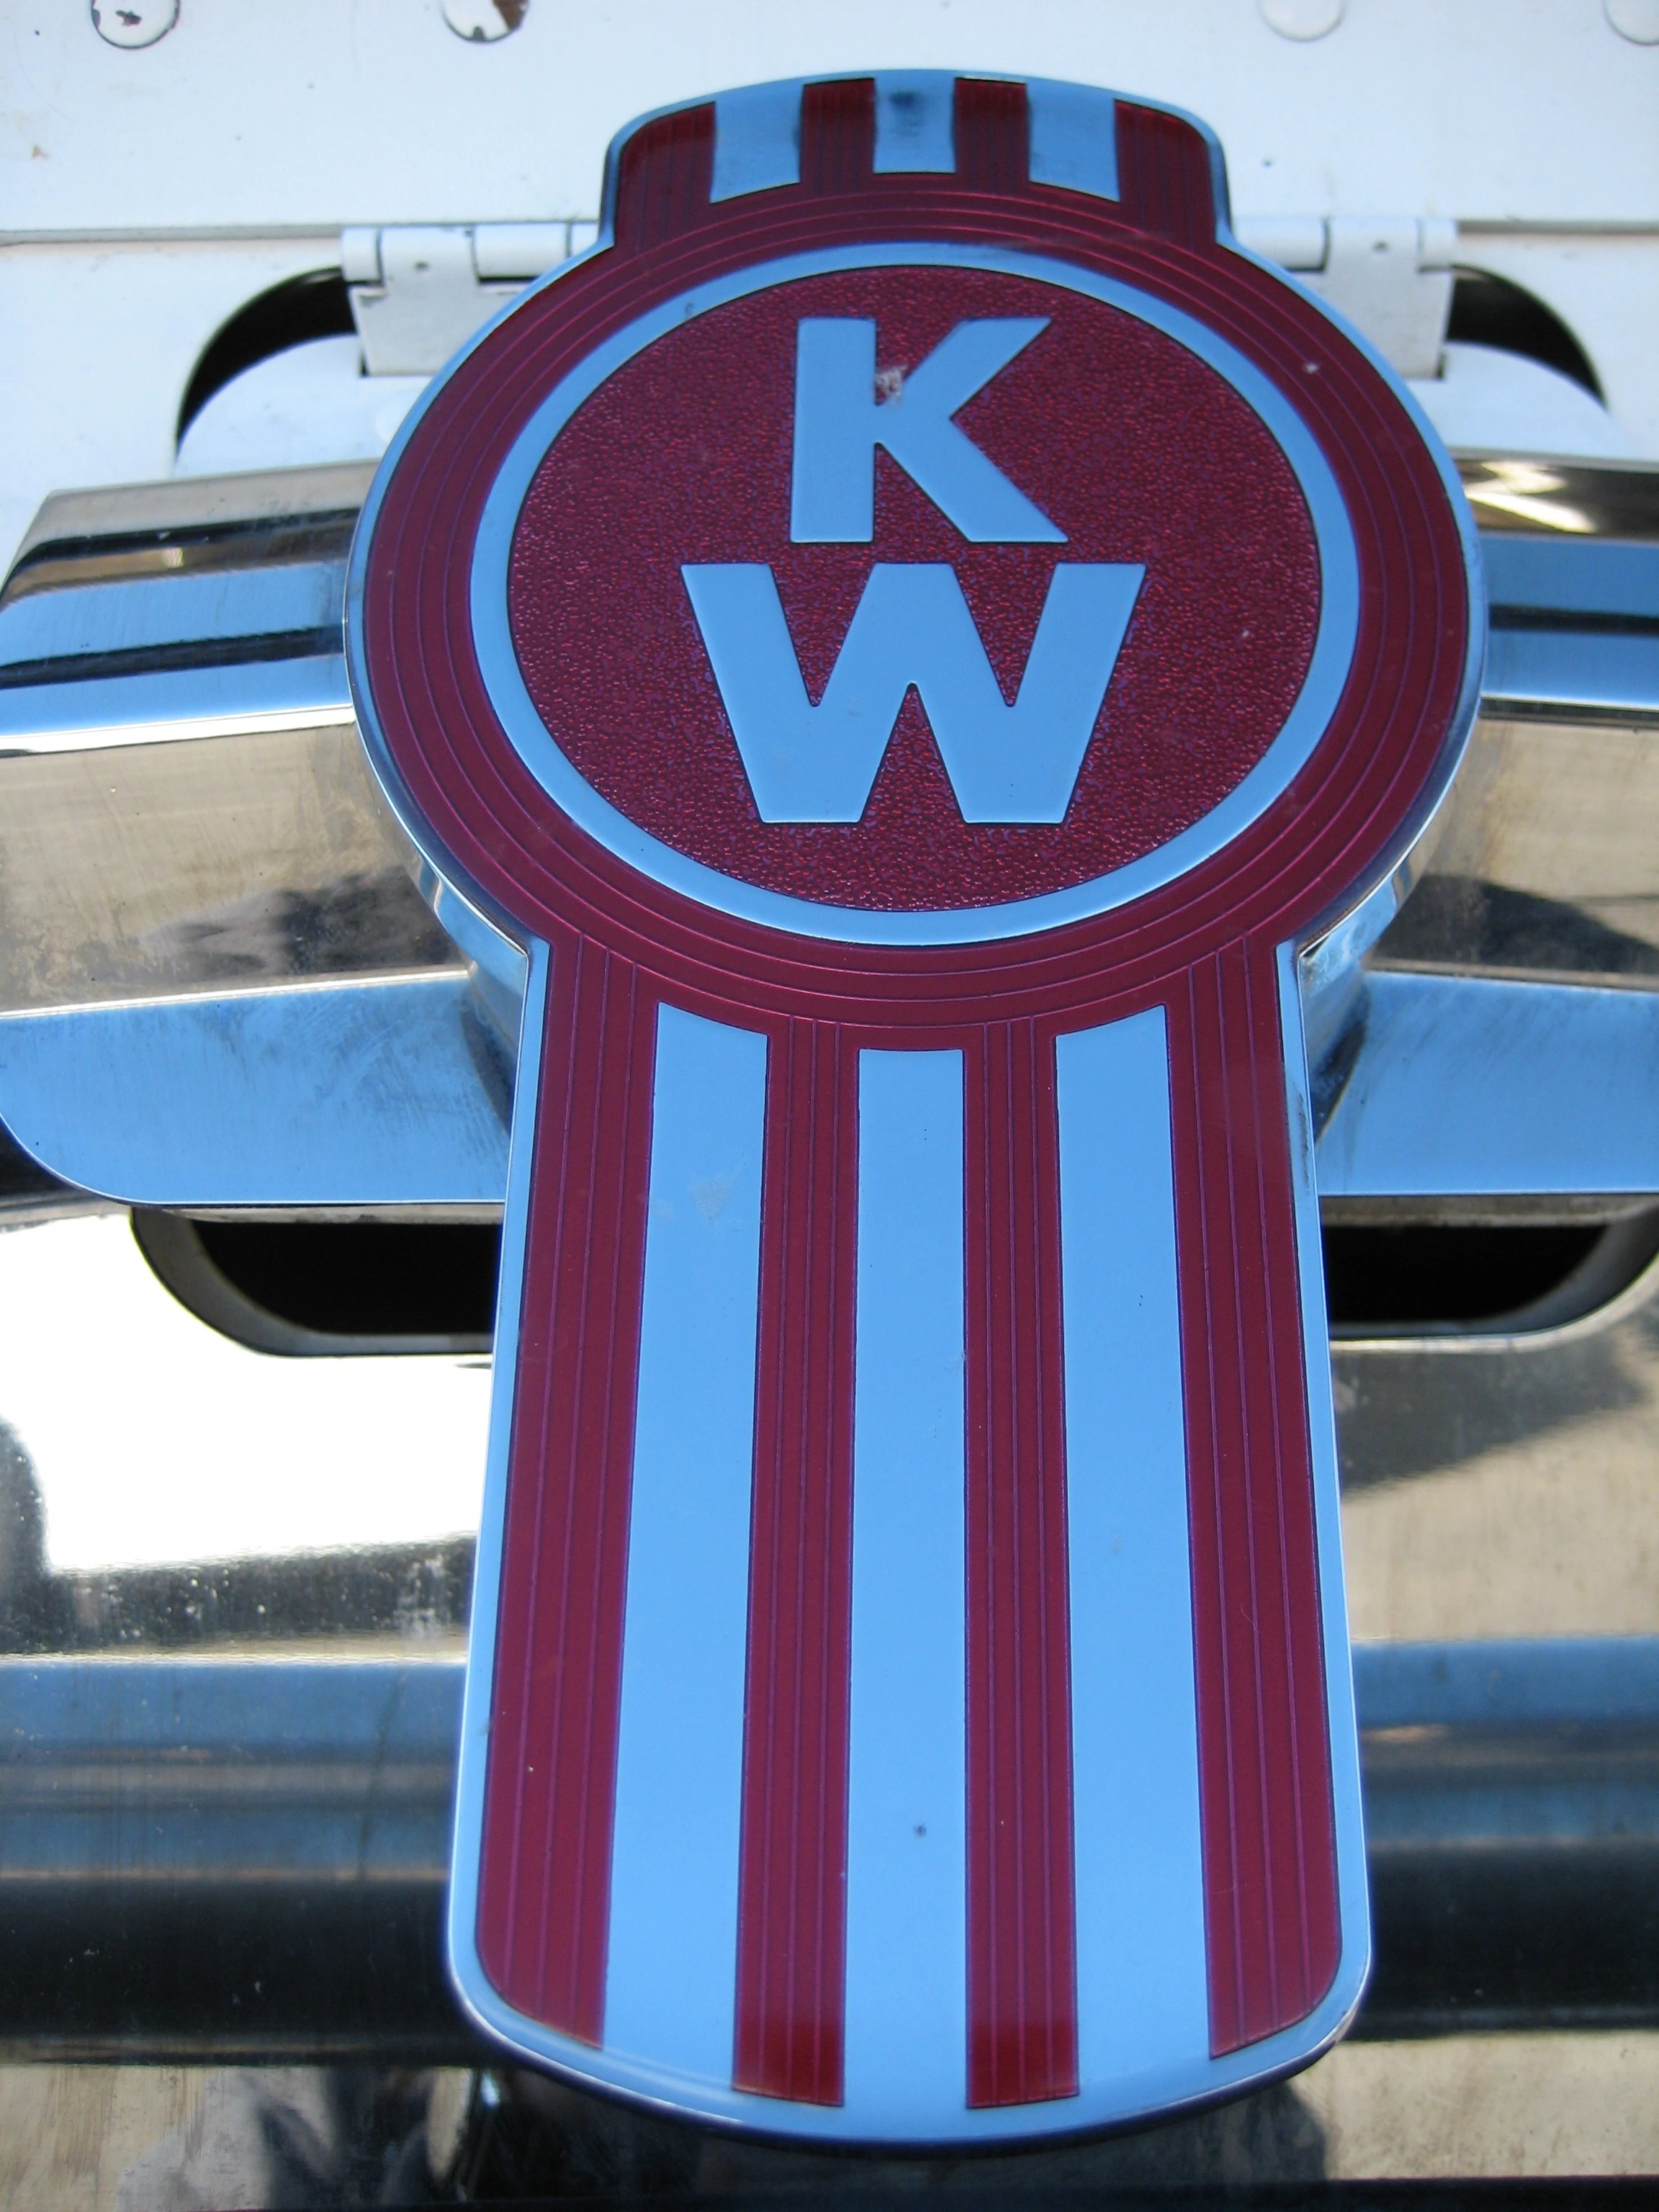 Kenworth Tractor Amp Construction Plant Wiki The Classic